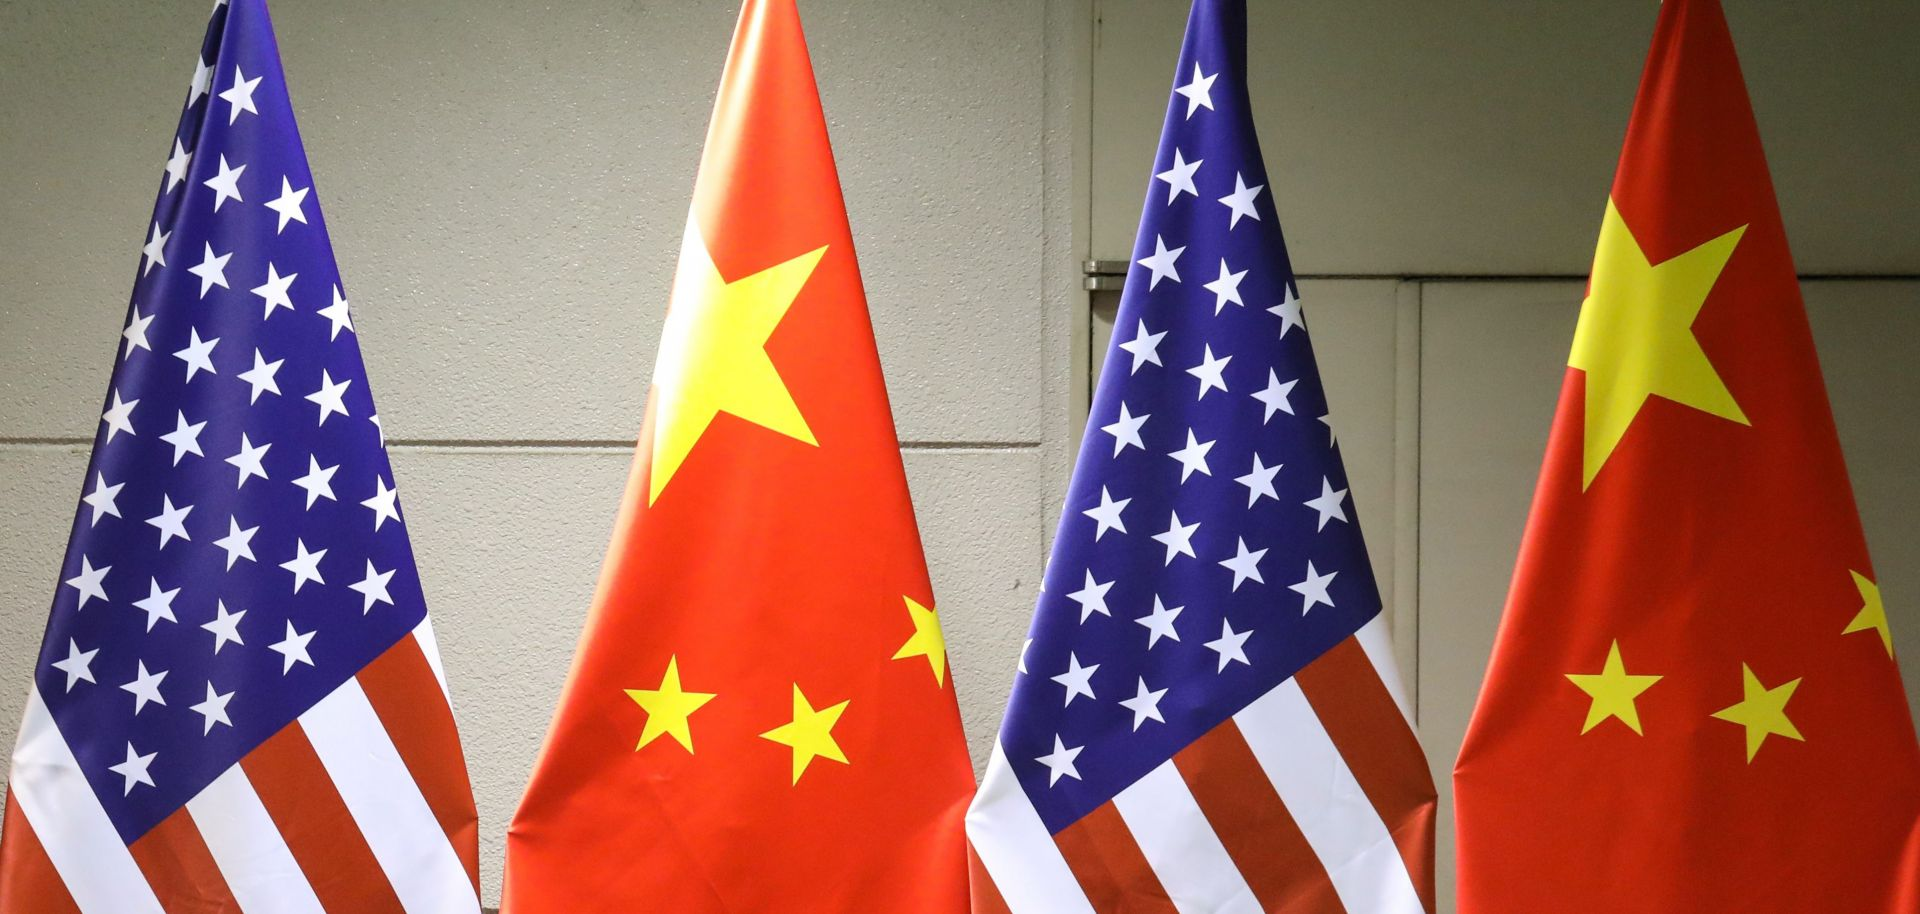 A display shows the national flags of China and the United States at the Group of 20 (G-20) Summit in Osaka, Japan, on June 29, 2019.